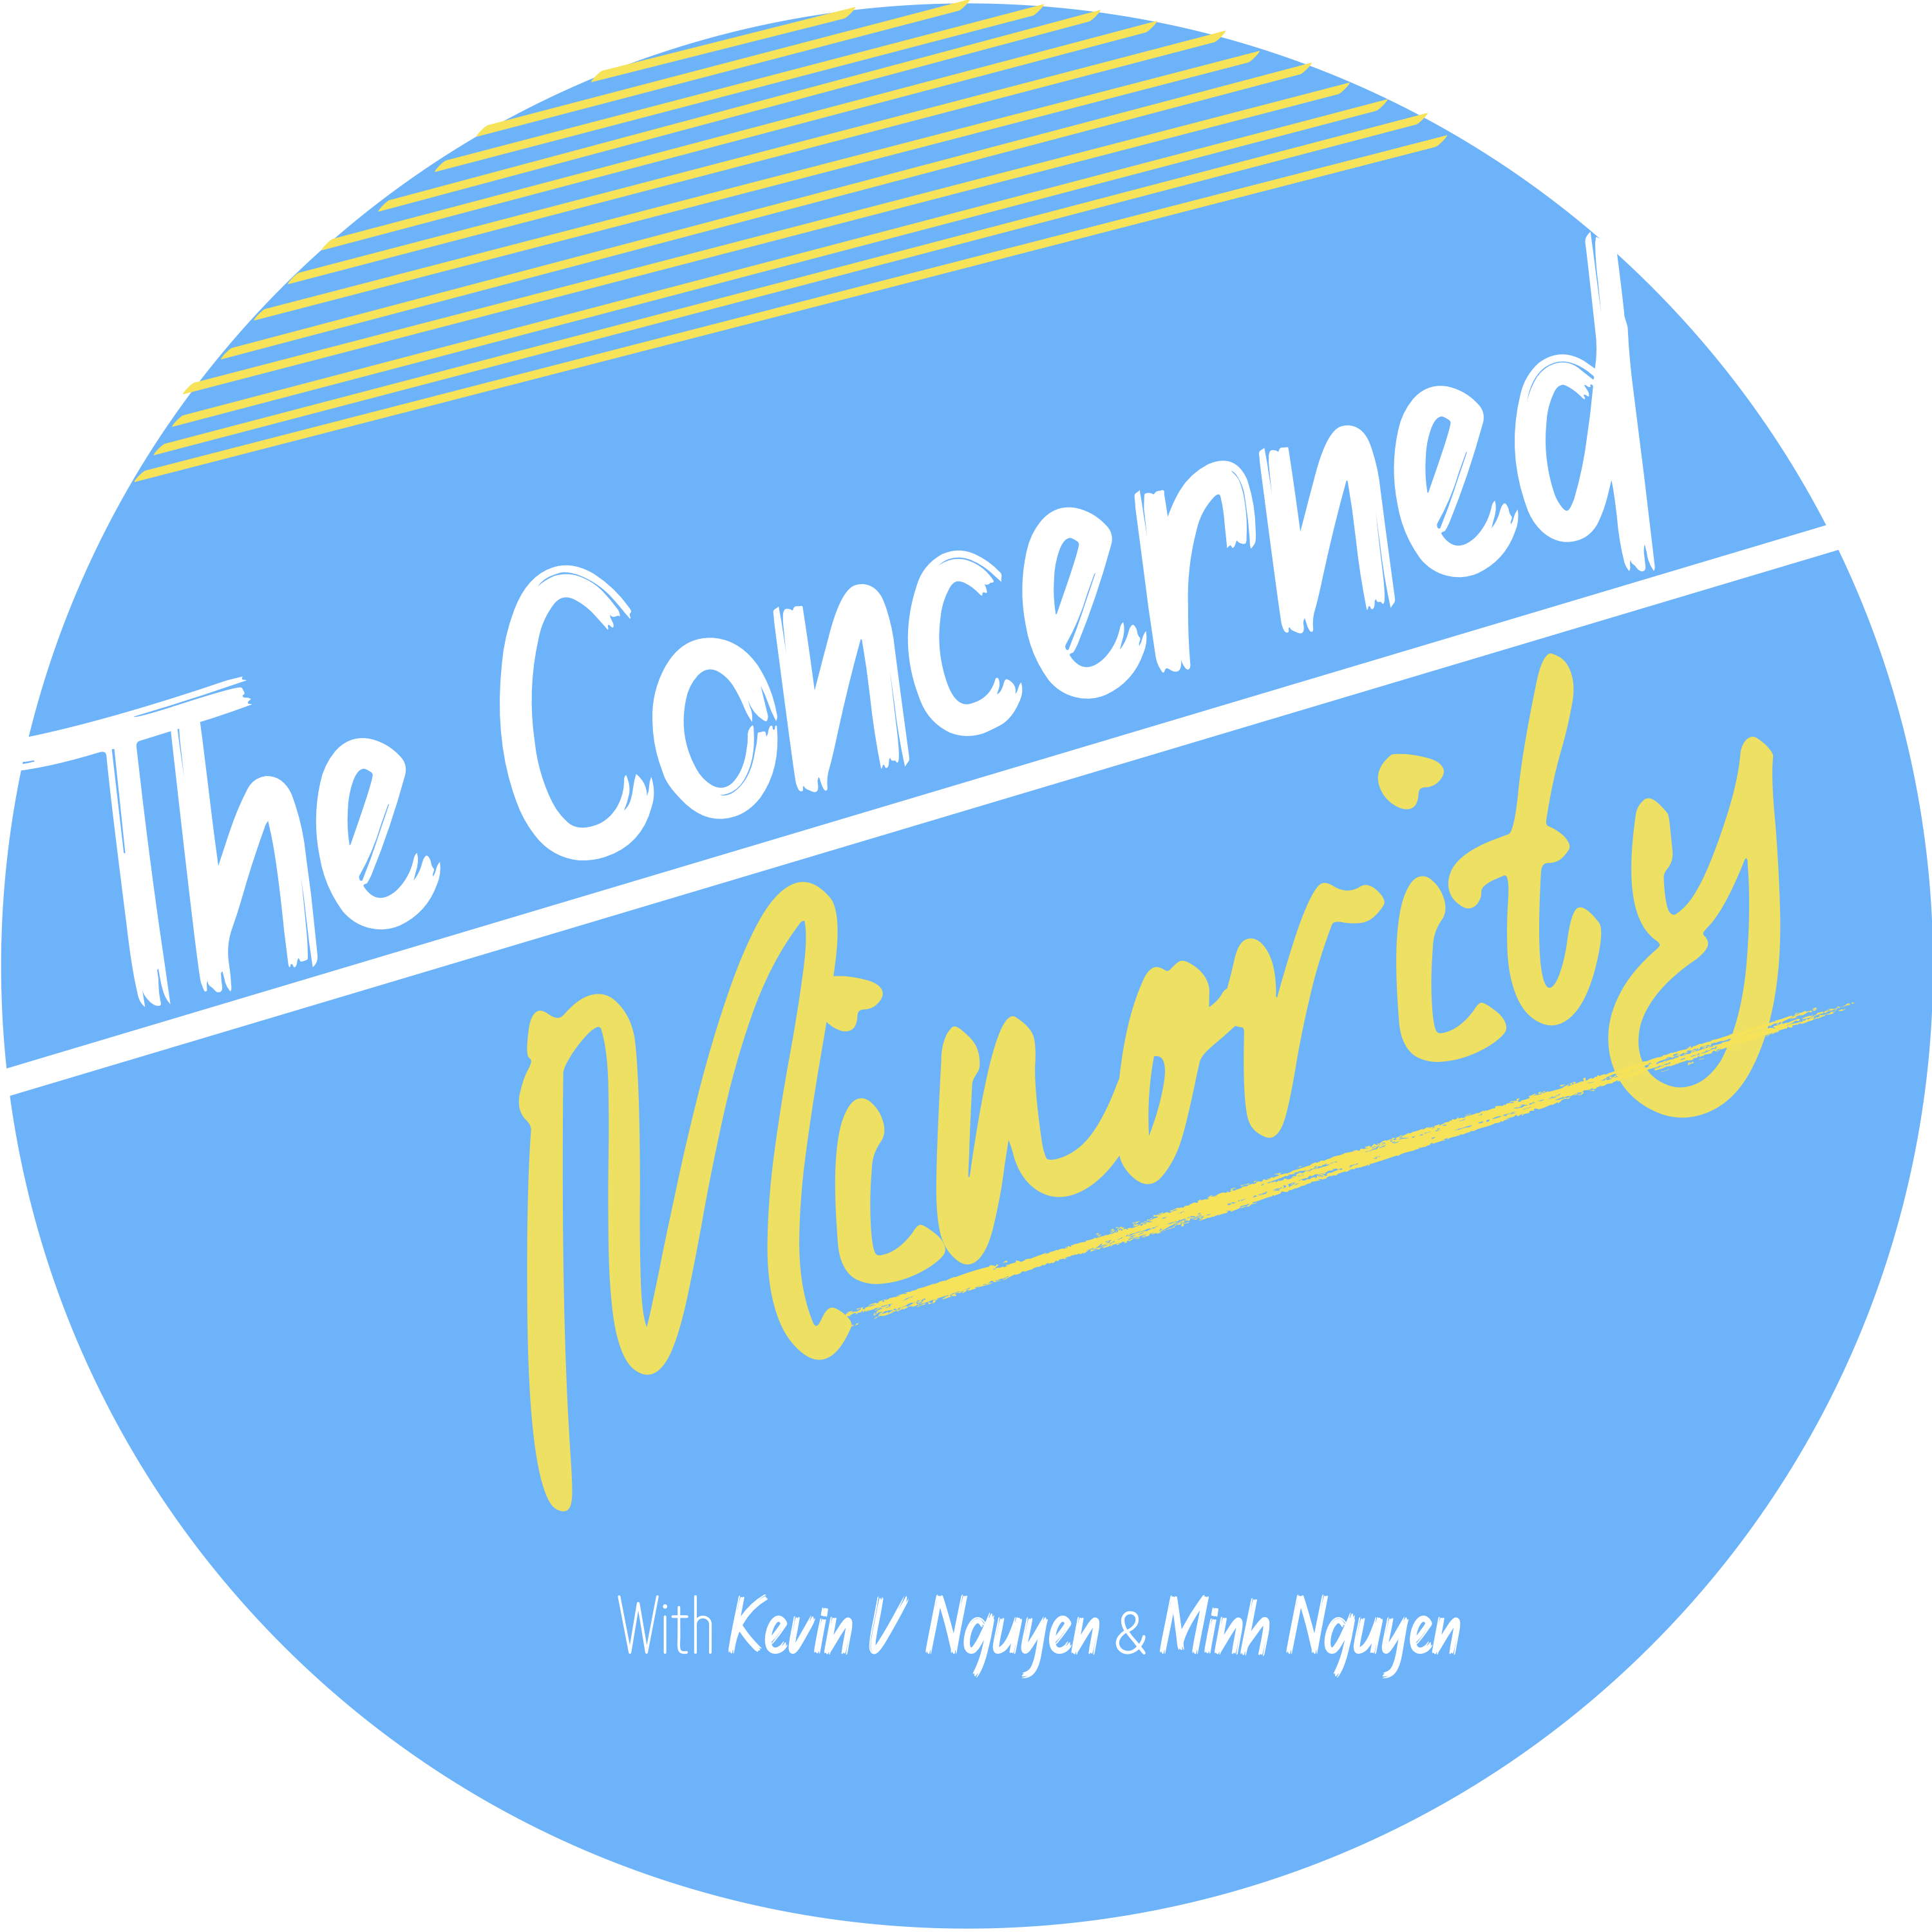 The Concerned Minority